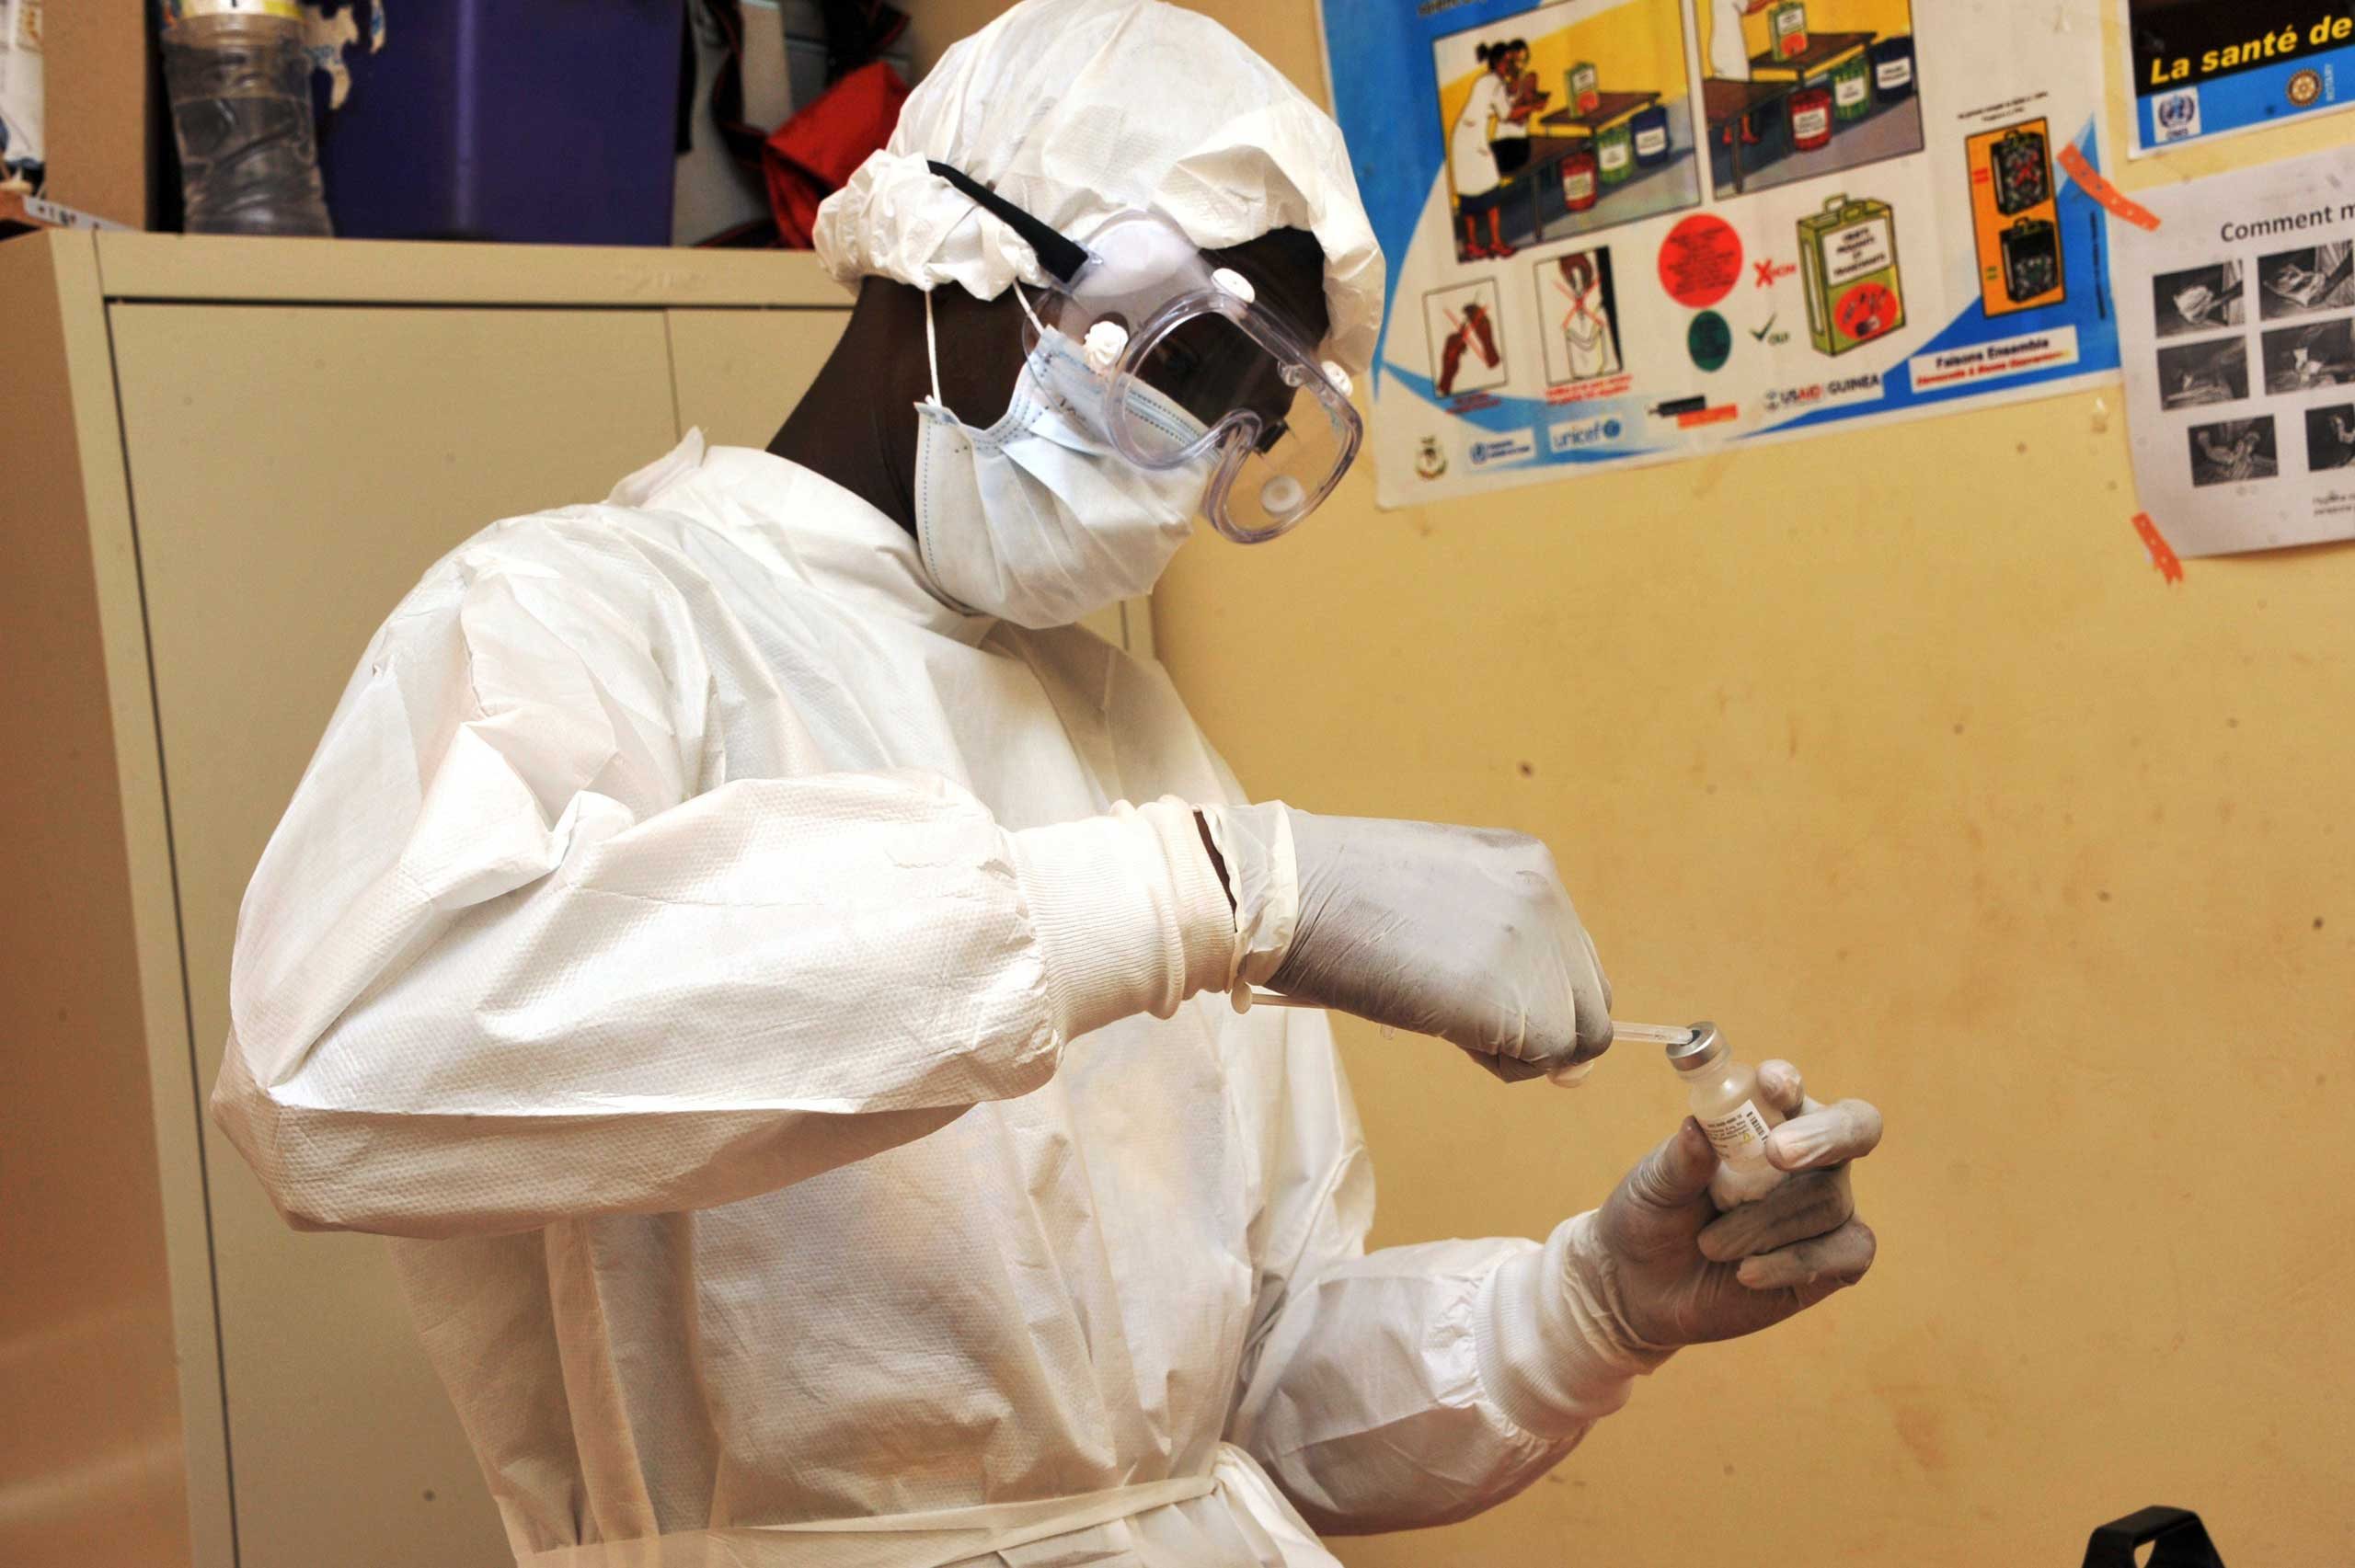 A health worker prepares a vaccination on March 10, 2015 at a health center in Conakry during the first clinical trials of the VSV-EBOV vaccine against the Ebola virus.